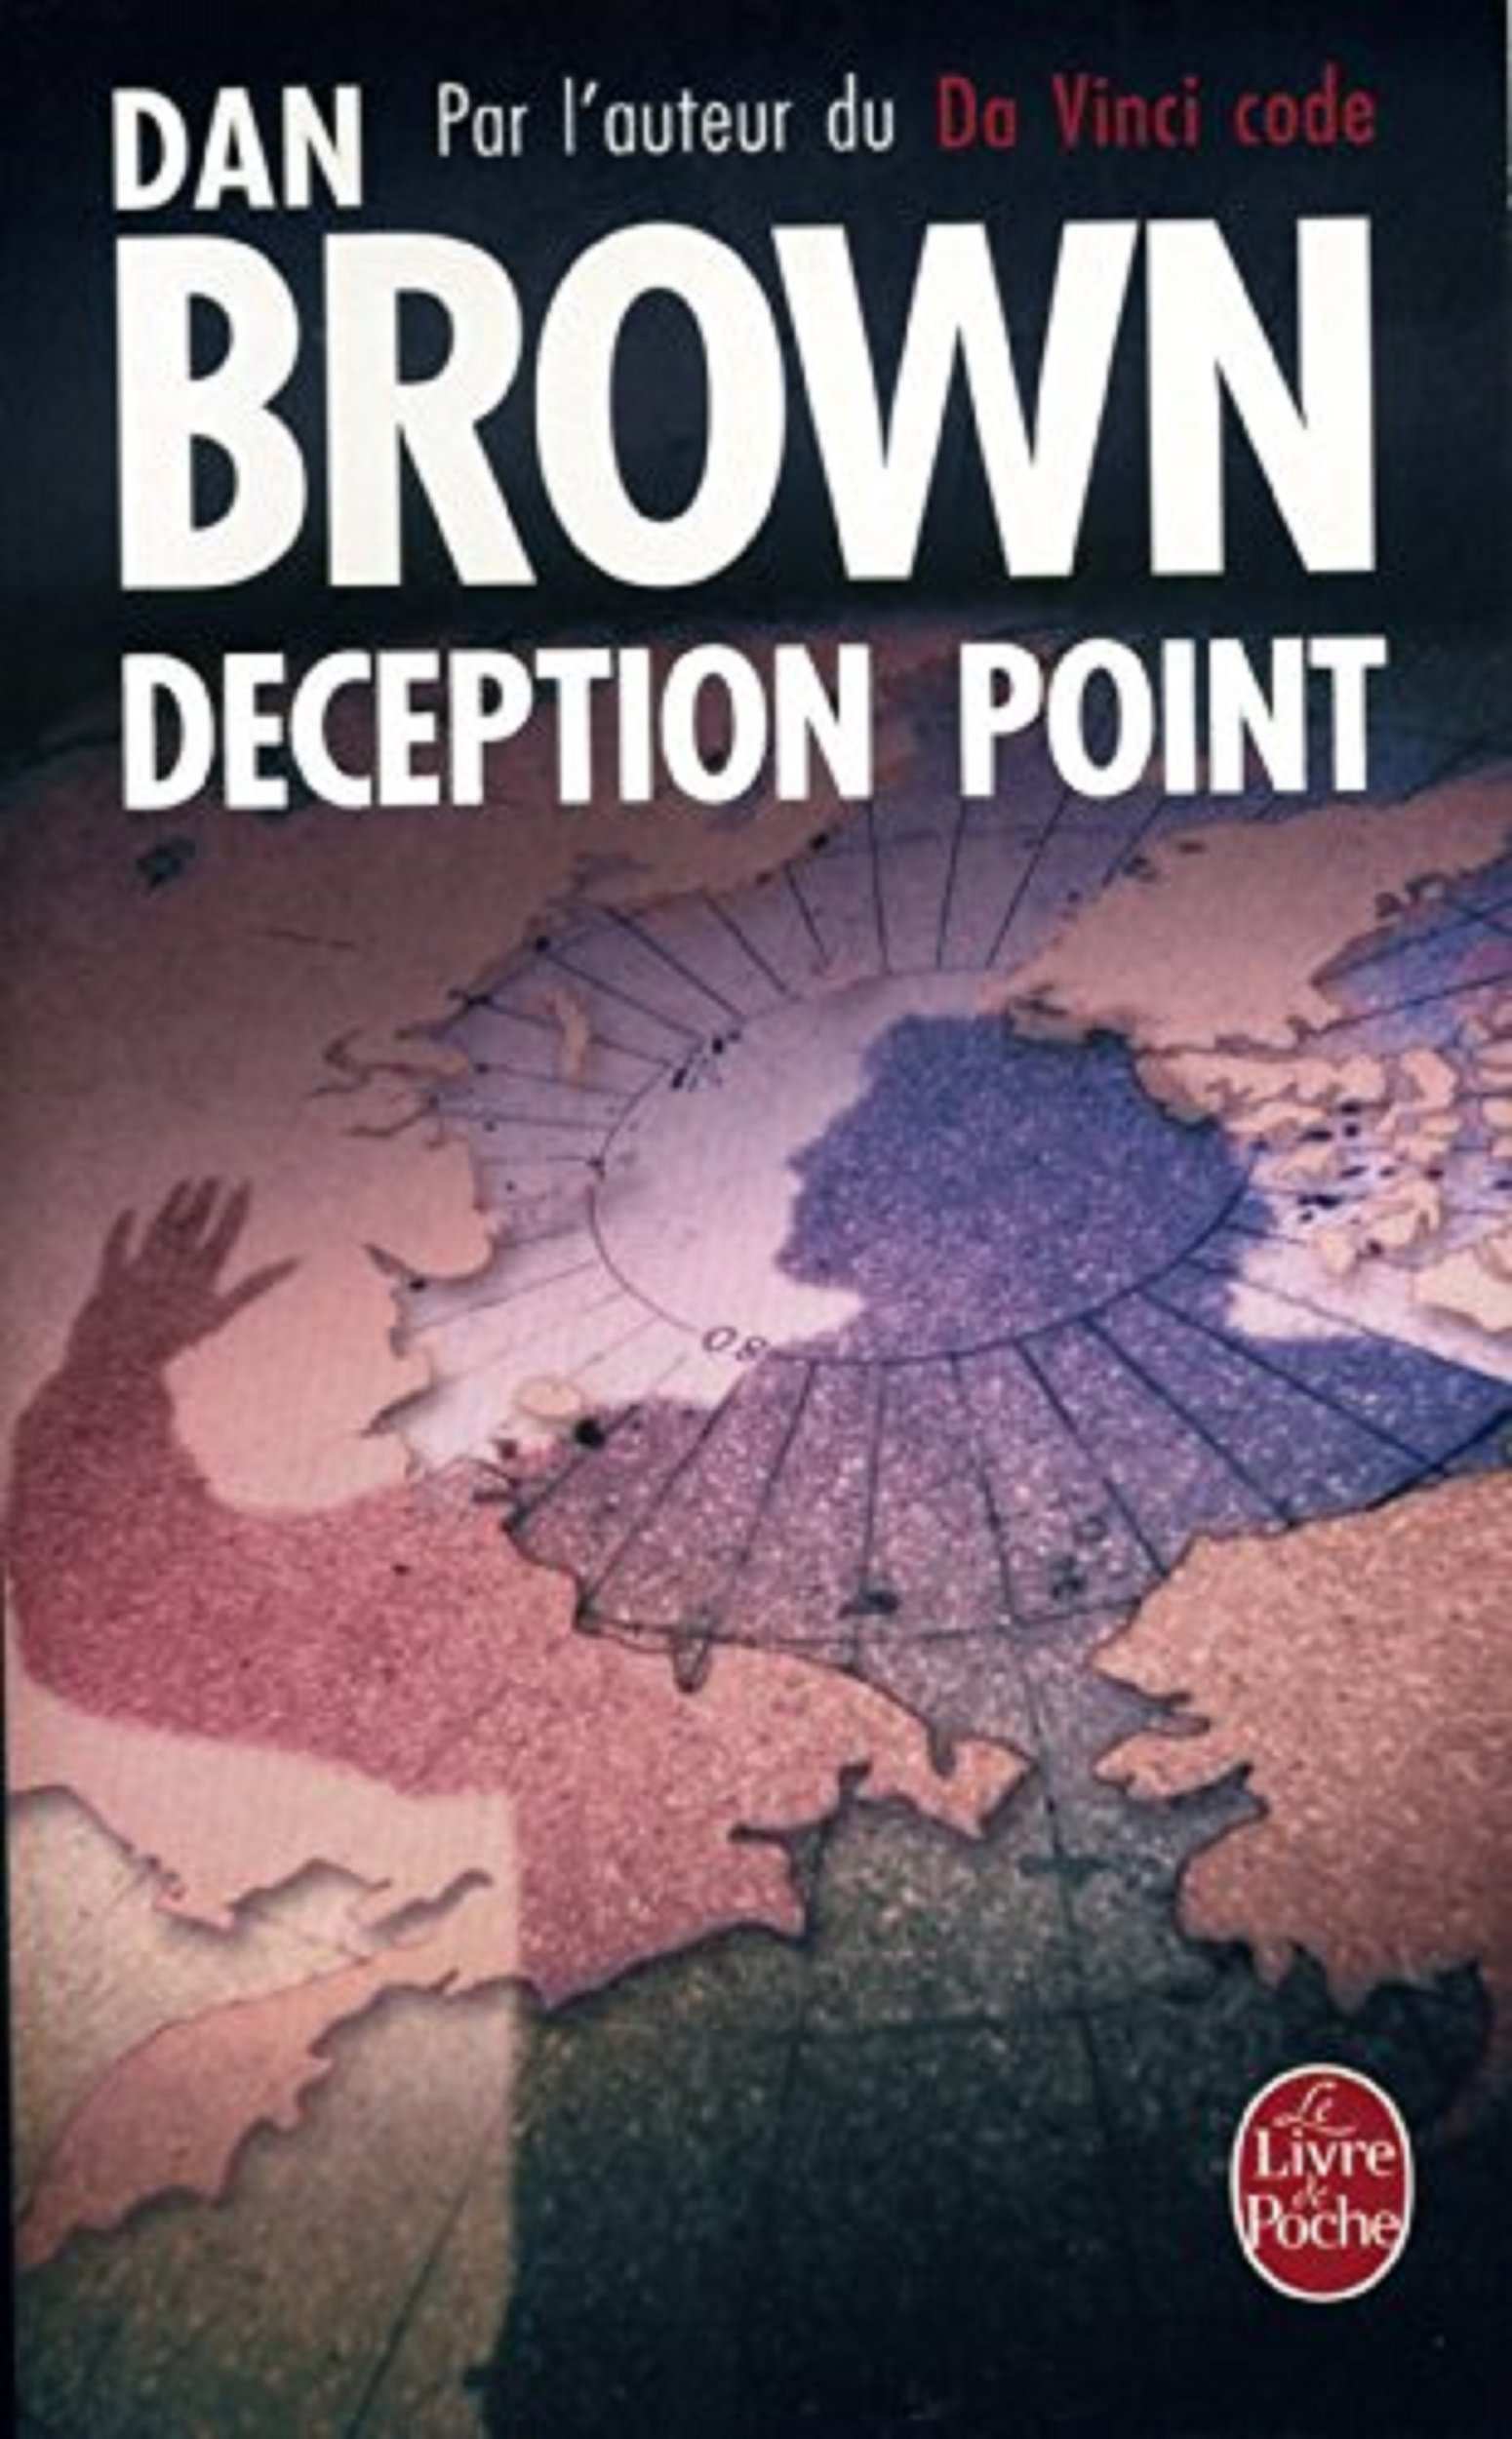 Amazon.com: Deception Point (Le Livre de Poche) (French Edition)  (9782253123163): Dan Brown: Books